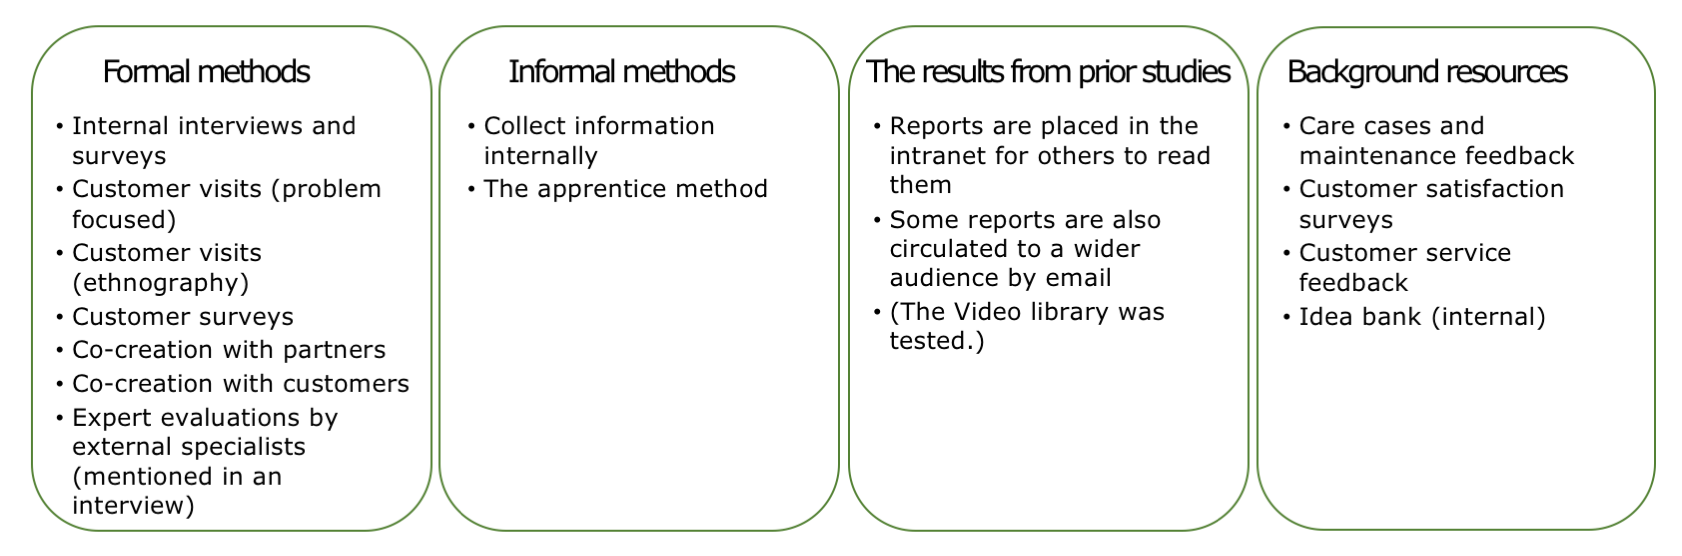 Method-mix demonstrates a good variety of  methods used within the company.